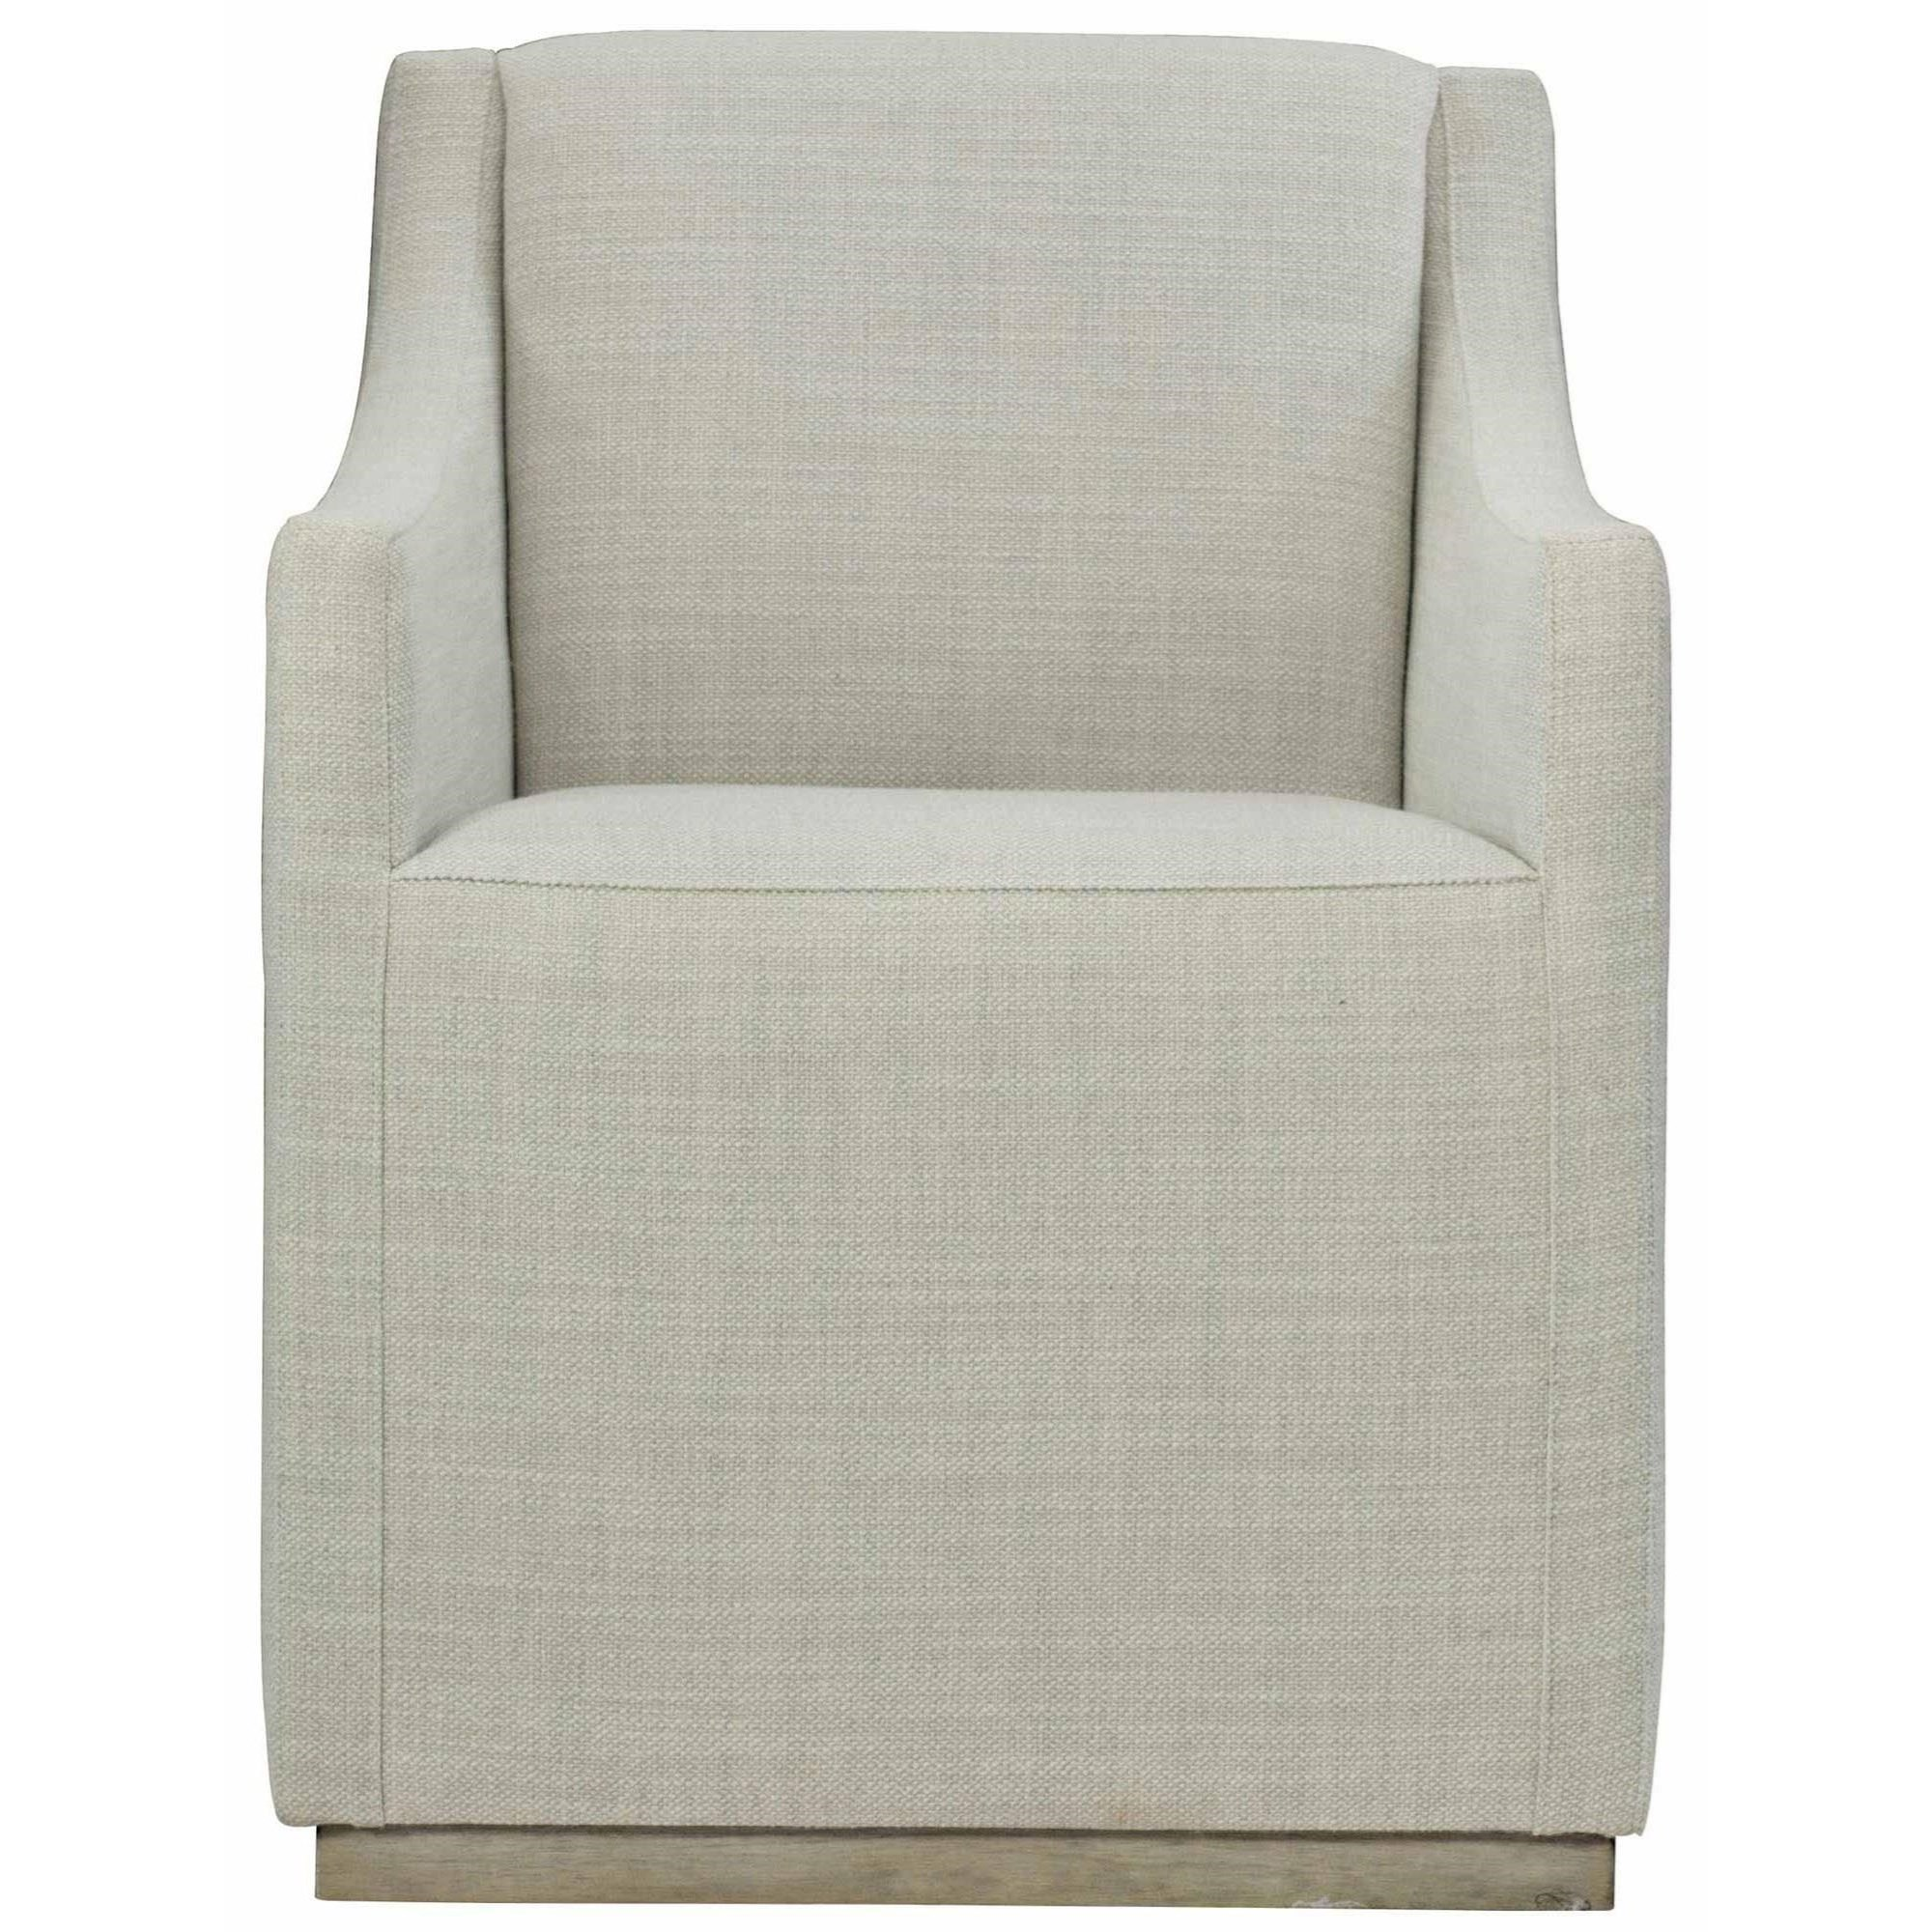 Loft - Highland Park Casey Upholstered Dining Arm Chair by Bernhardt at Baer's Furniture